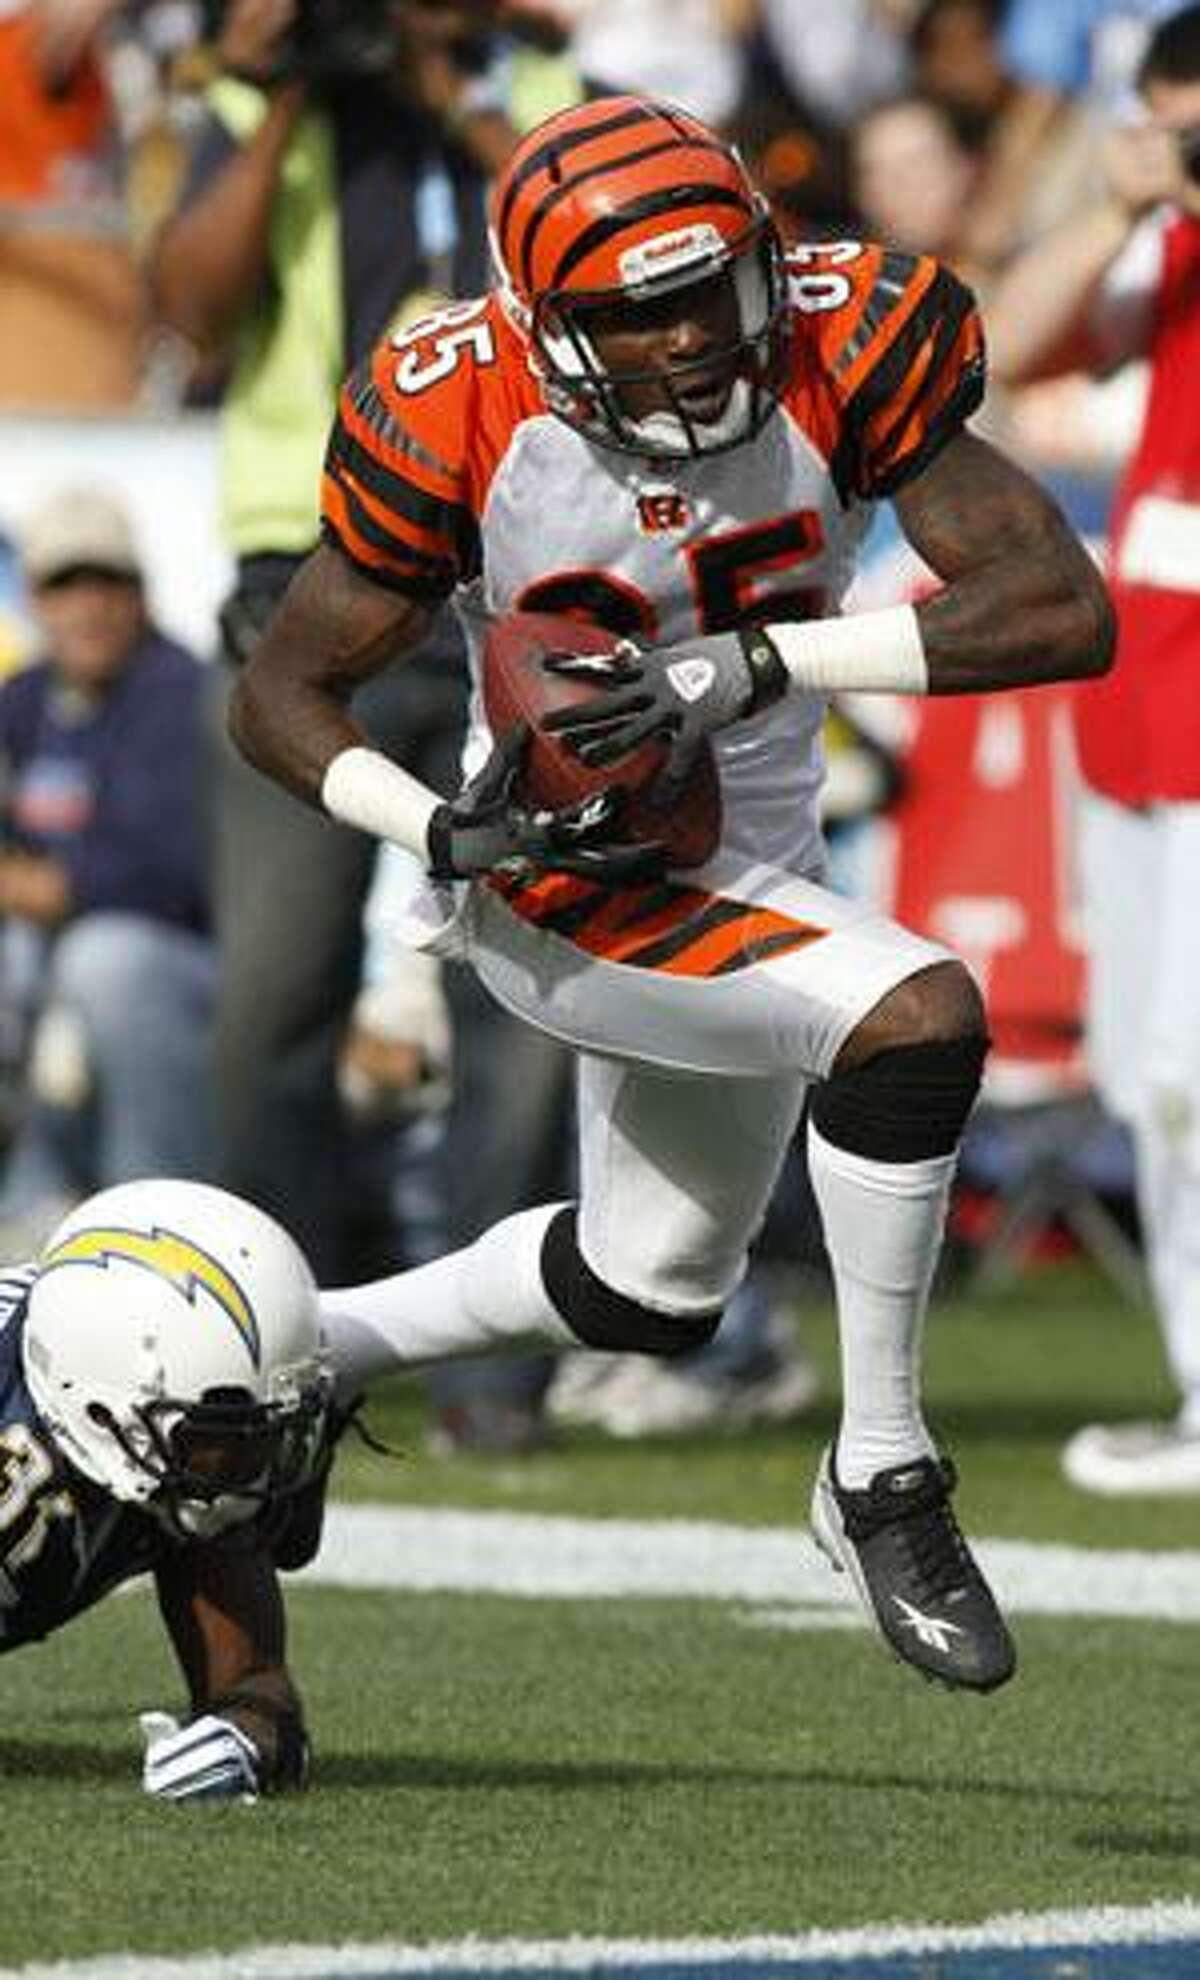 Cincinnati Bengals wide receiver Chad Ochocinco breaks away from San Diego Chargers cornerback Antonio Cromartie for a 49-yard touchdown reception Dec. 20 in San Diego.